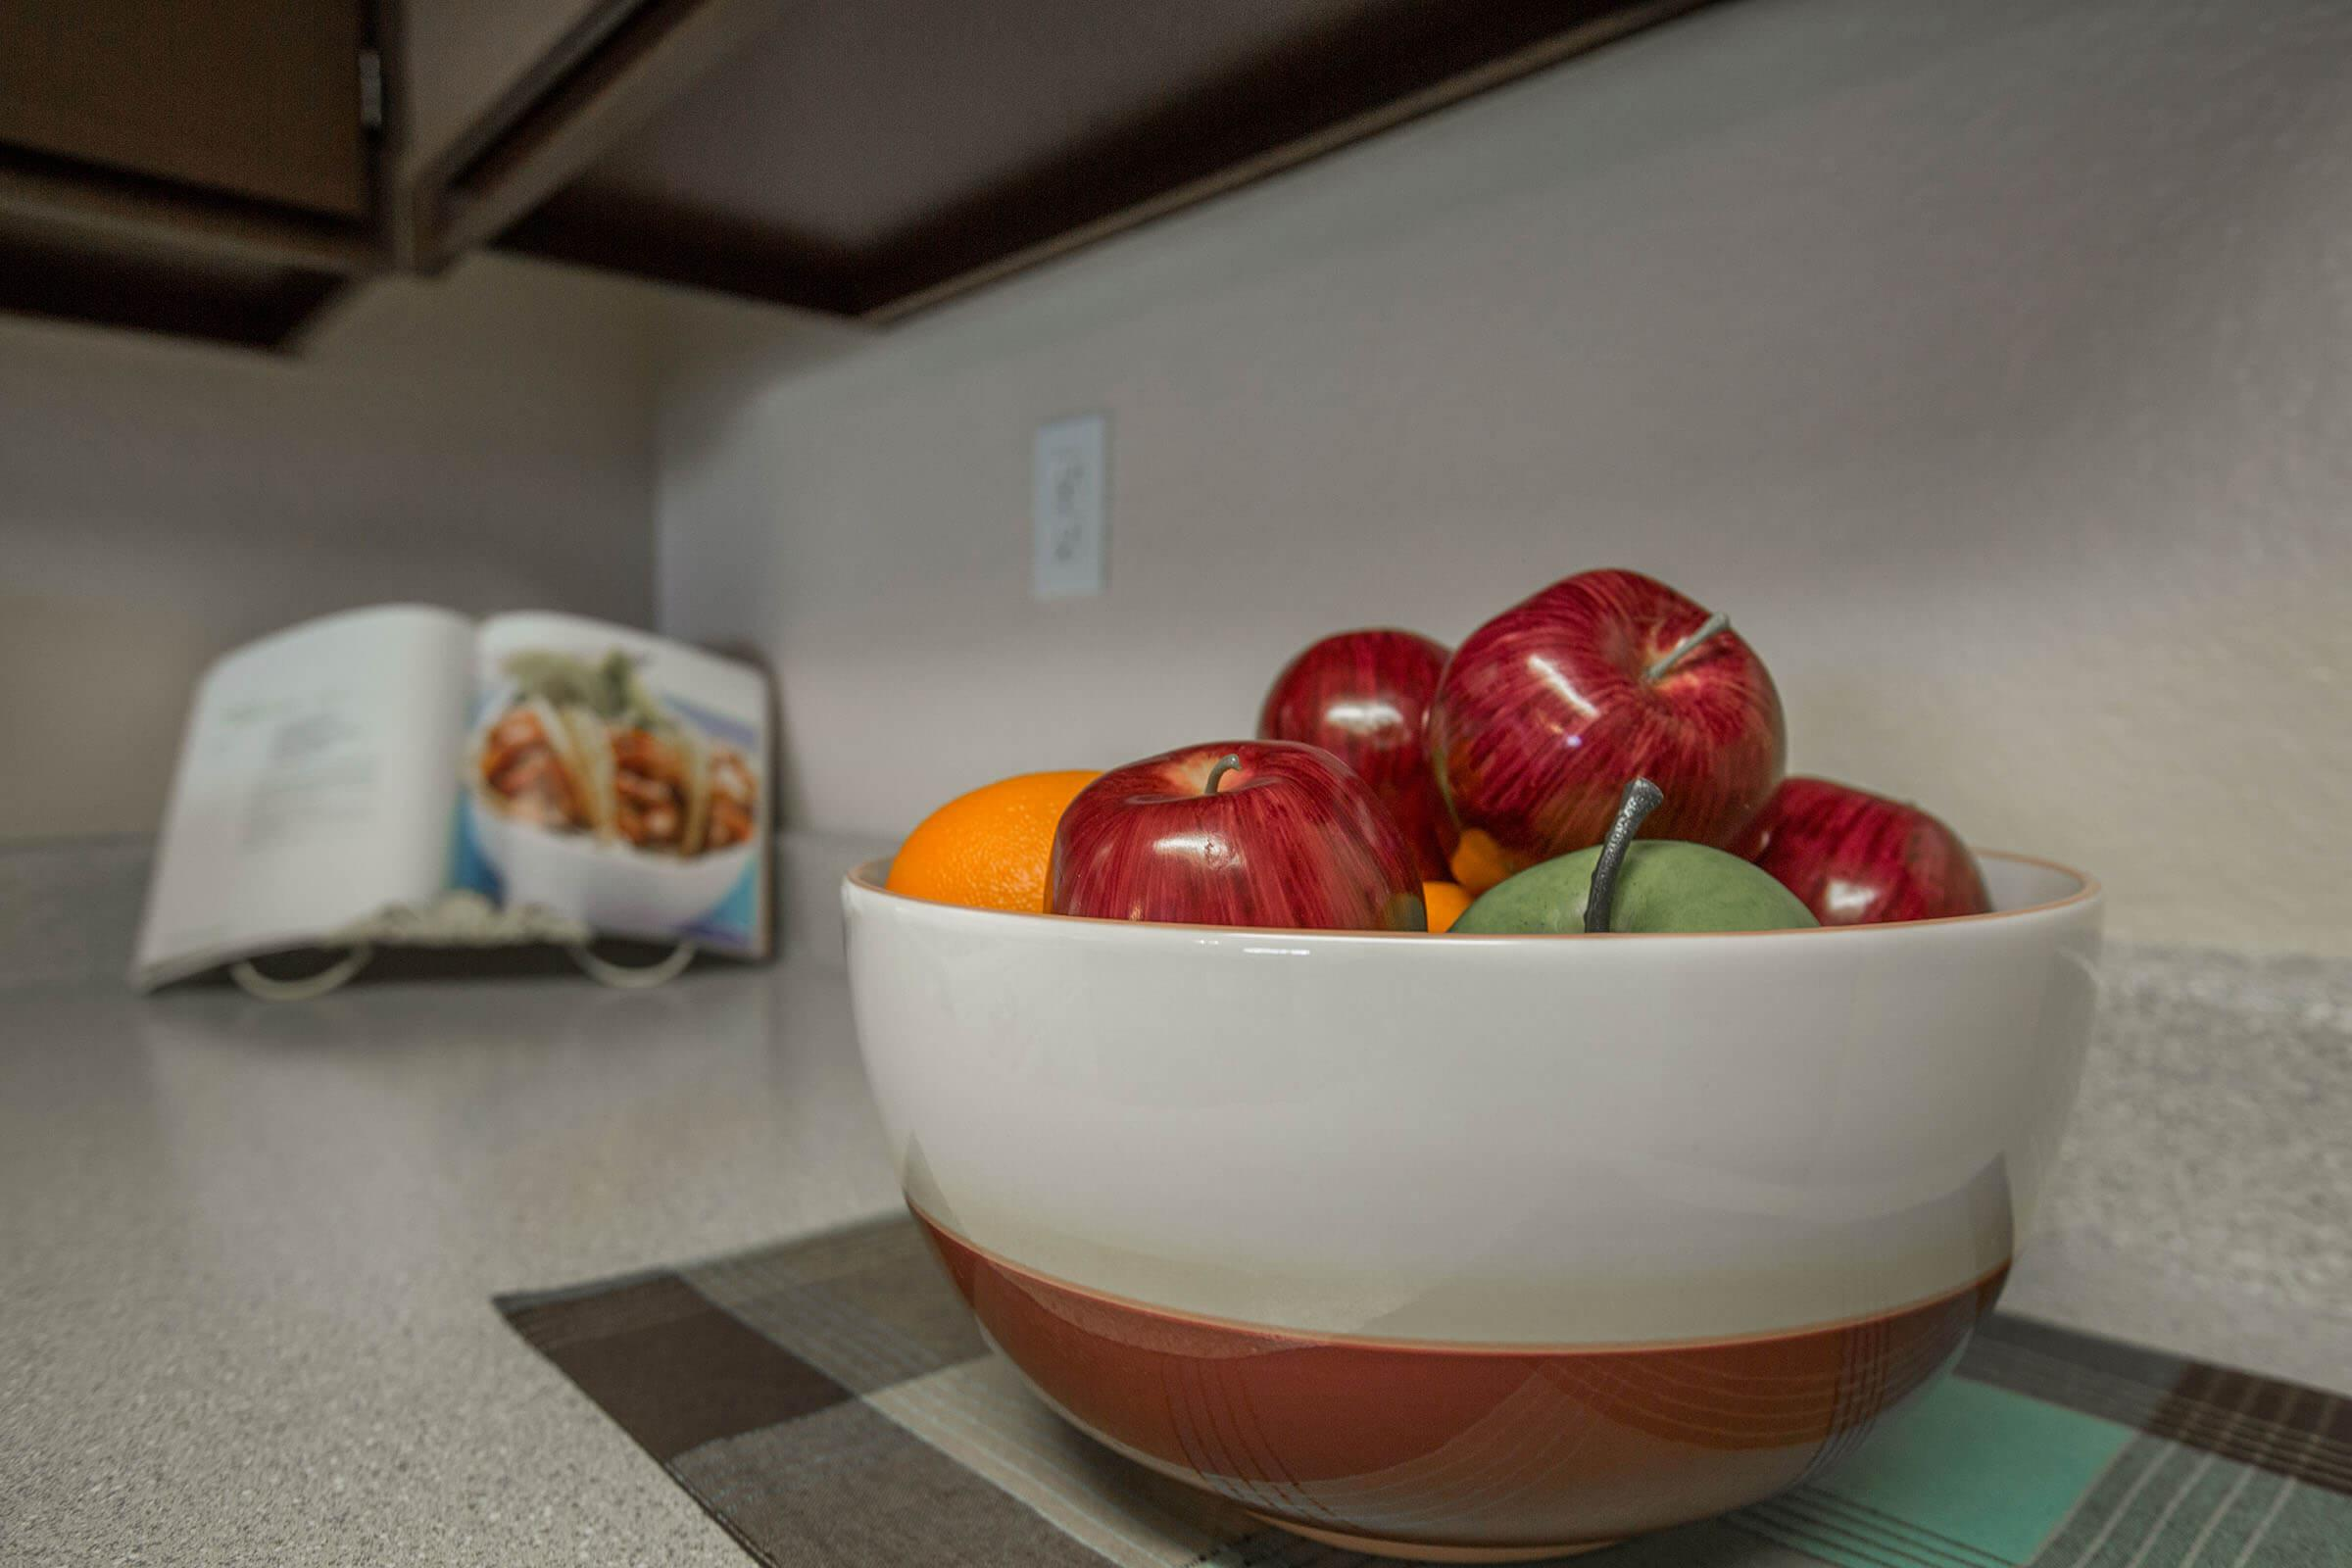 a bowl of fruit sitting on a table